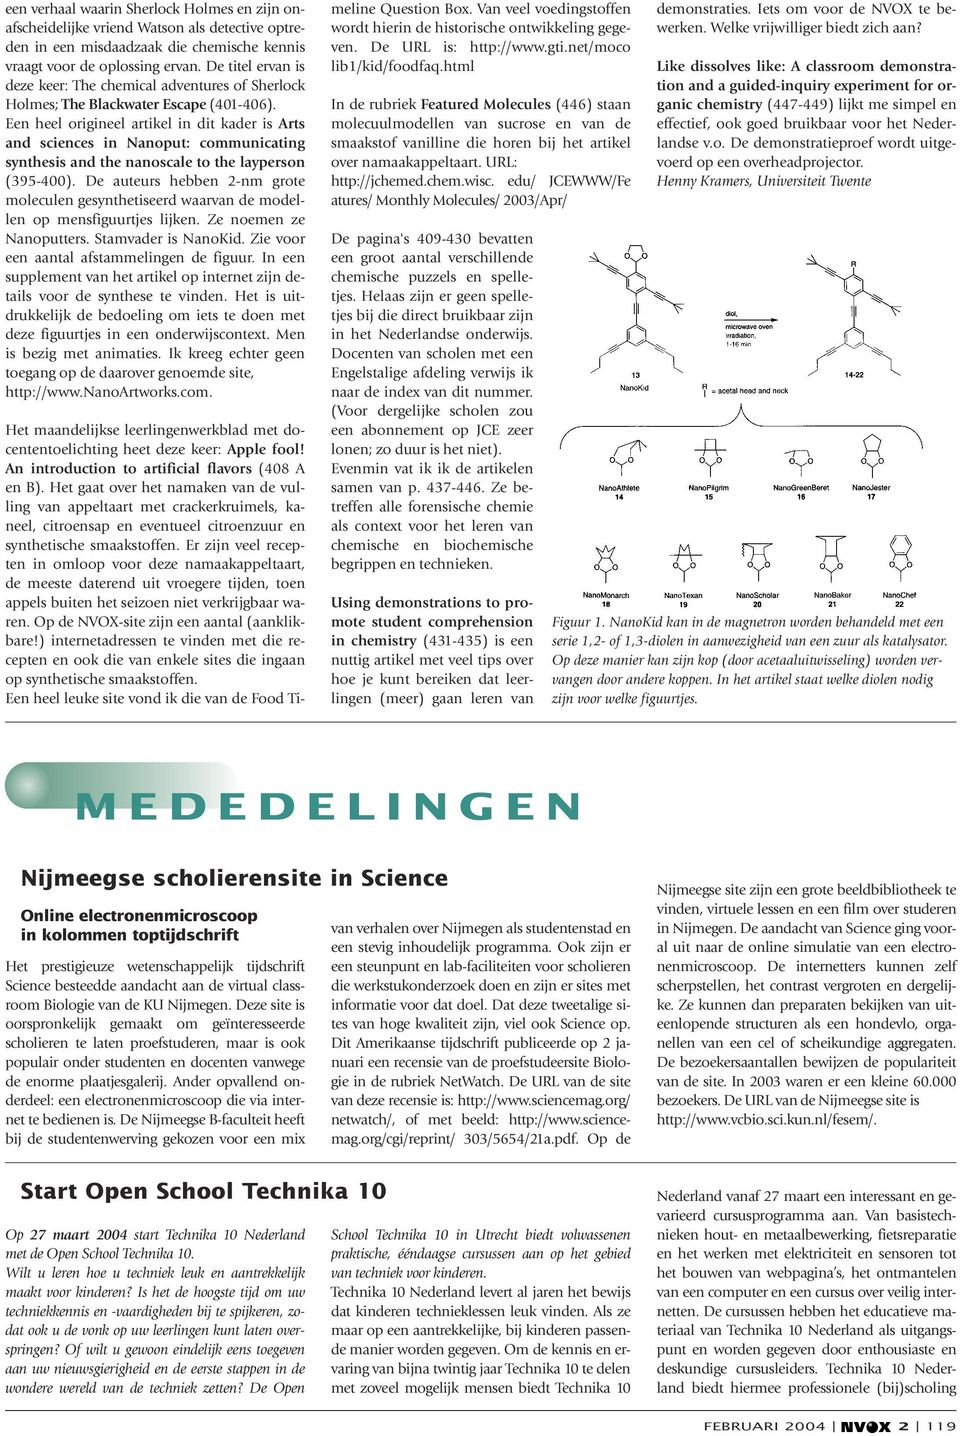 Een heel origineel artikel in dit kader is Arts and sciences in Nanoput: communicating synthesis and the nanoscale to the layperson (395-400).